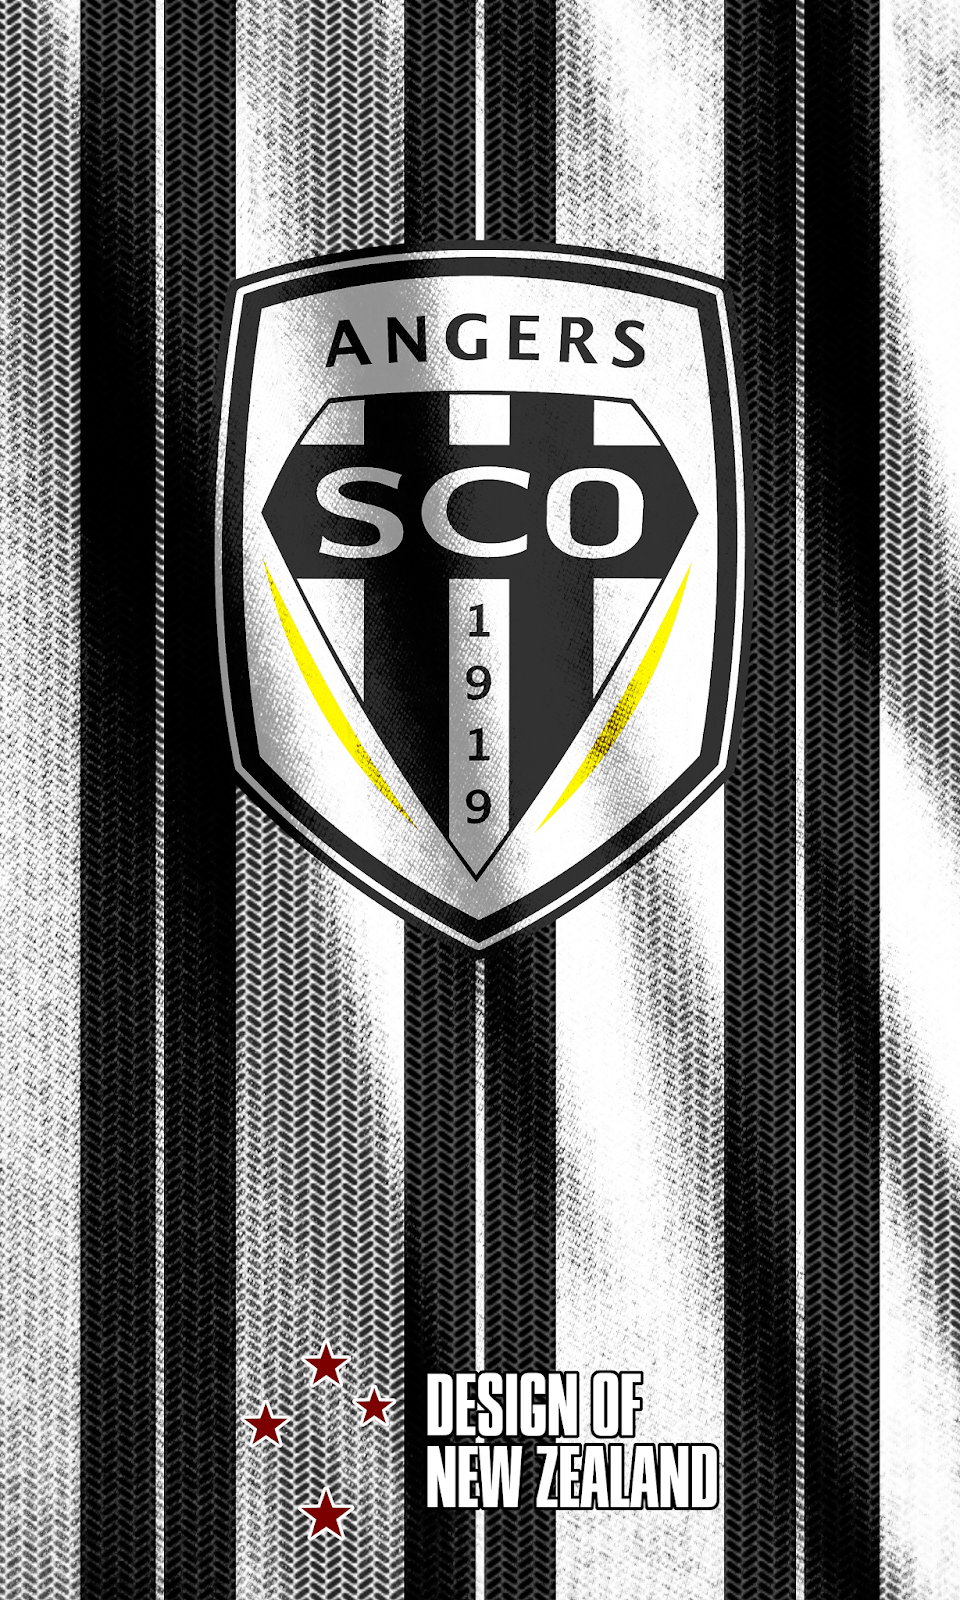 Wallpaper Angers SCO | The Football Illustrated, Inc. | Pinterest ...